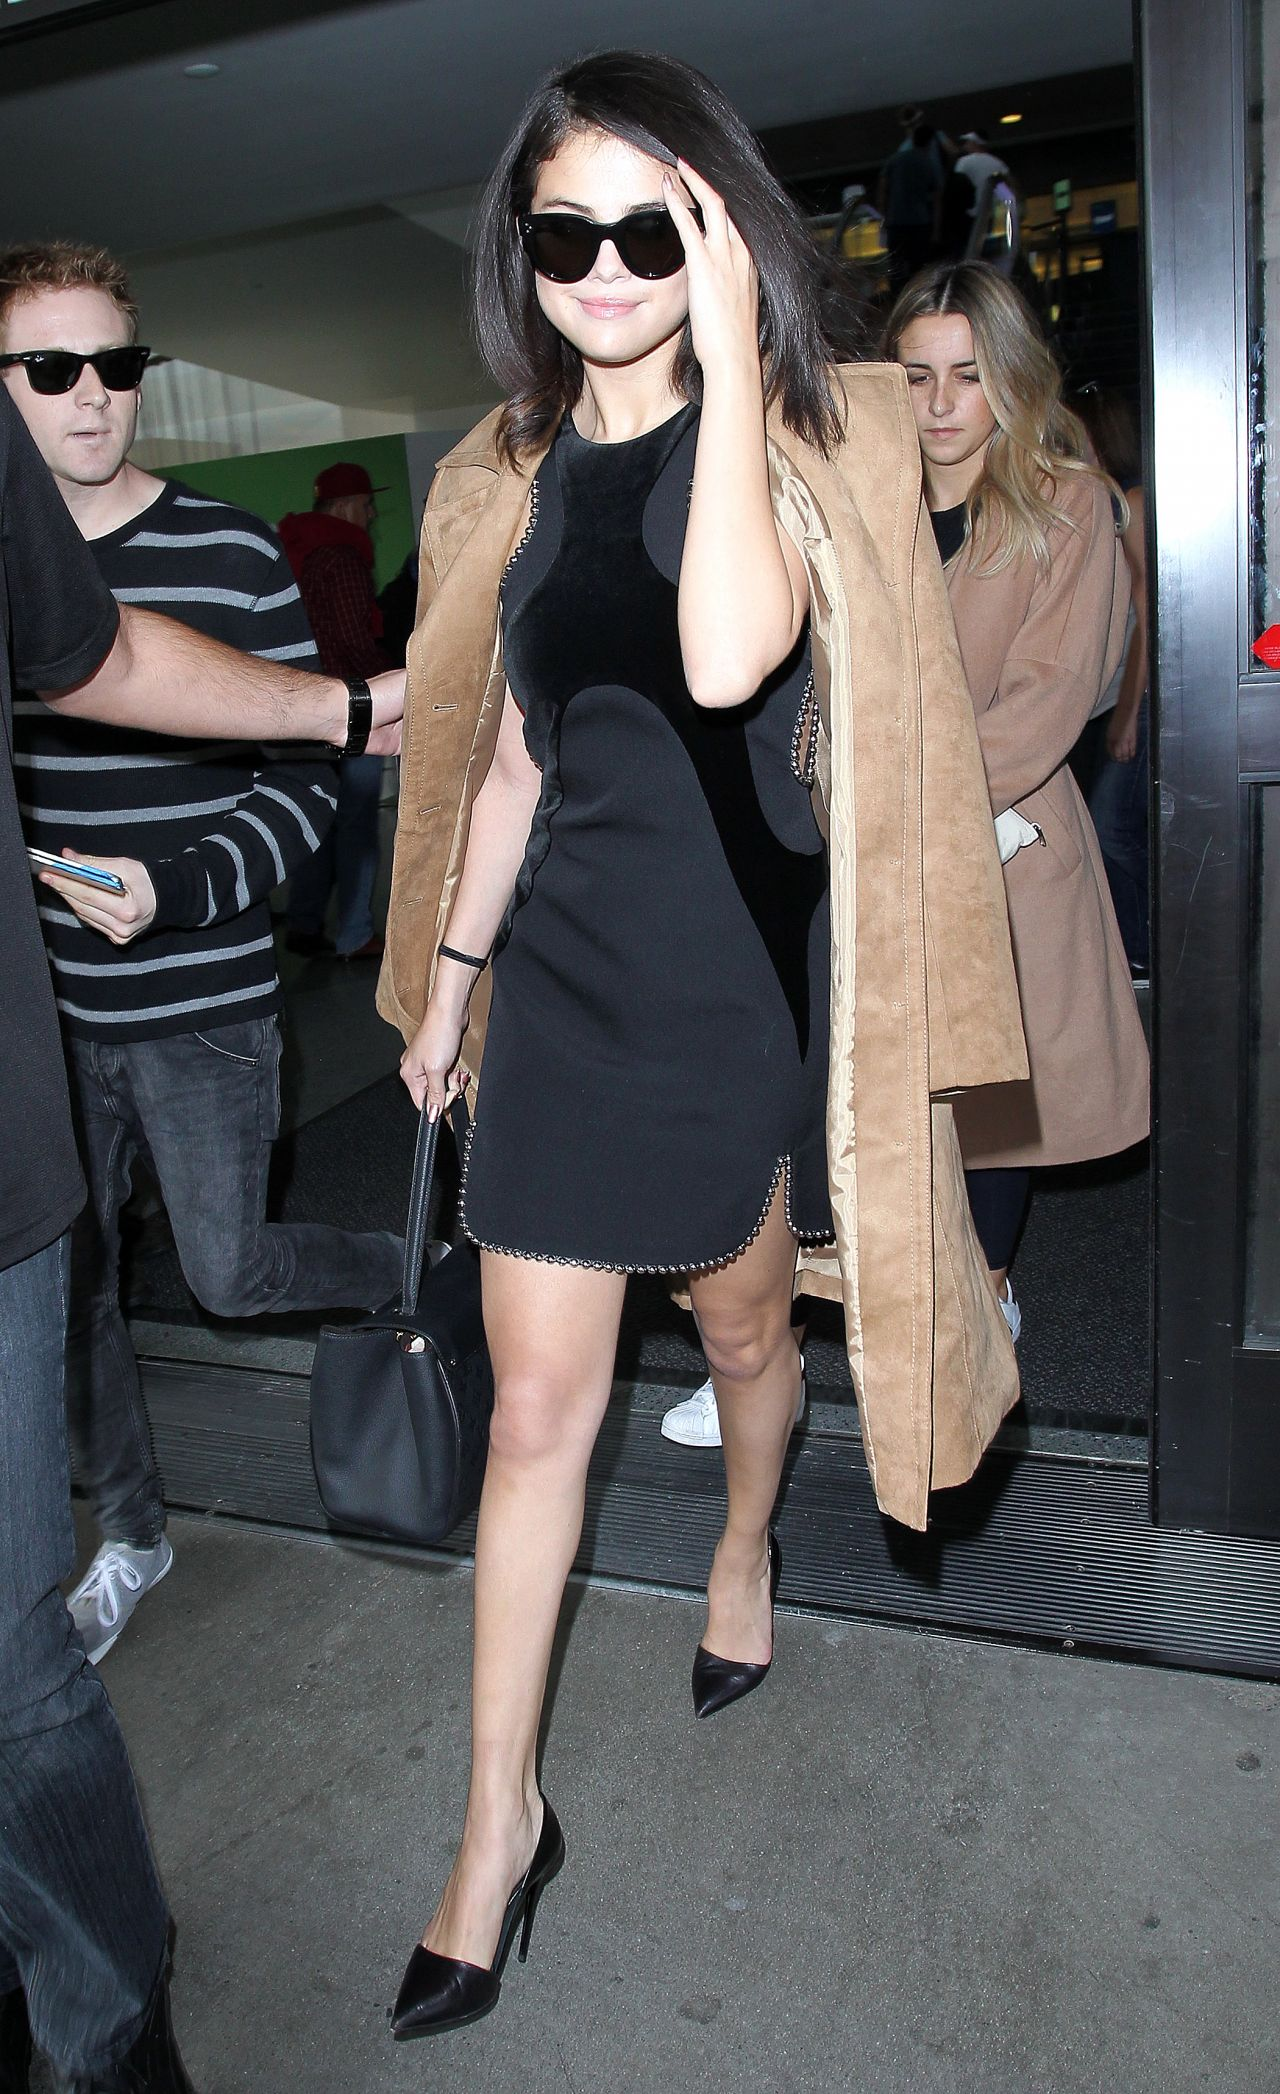 selena-gomez-arriving-at-lax-airport-in-los-angeles-october-2015_4